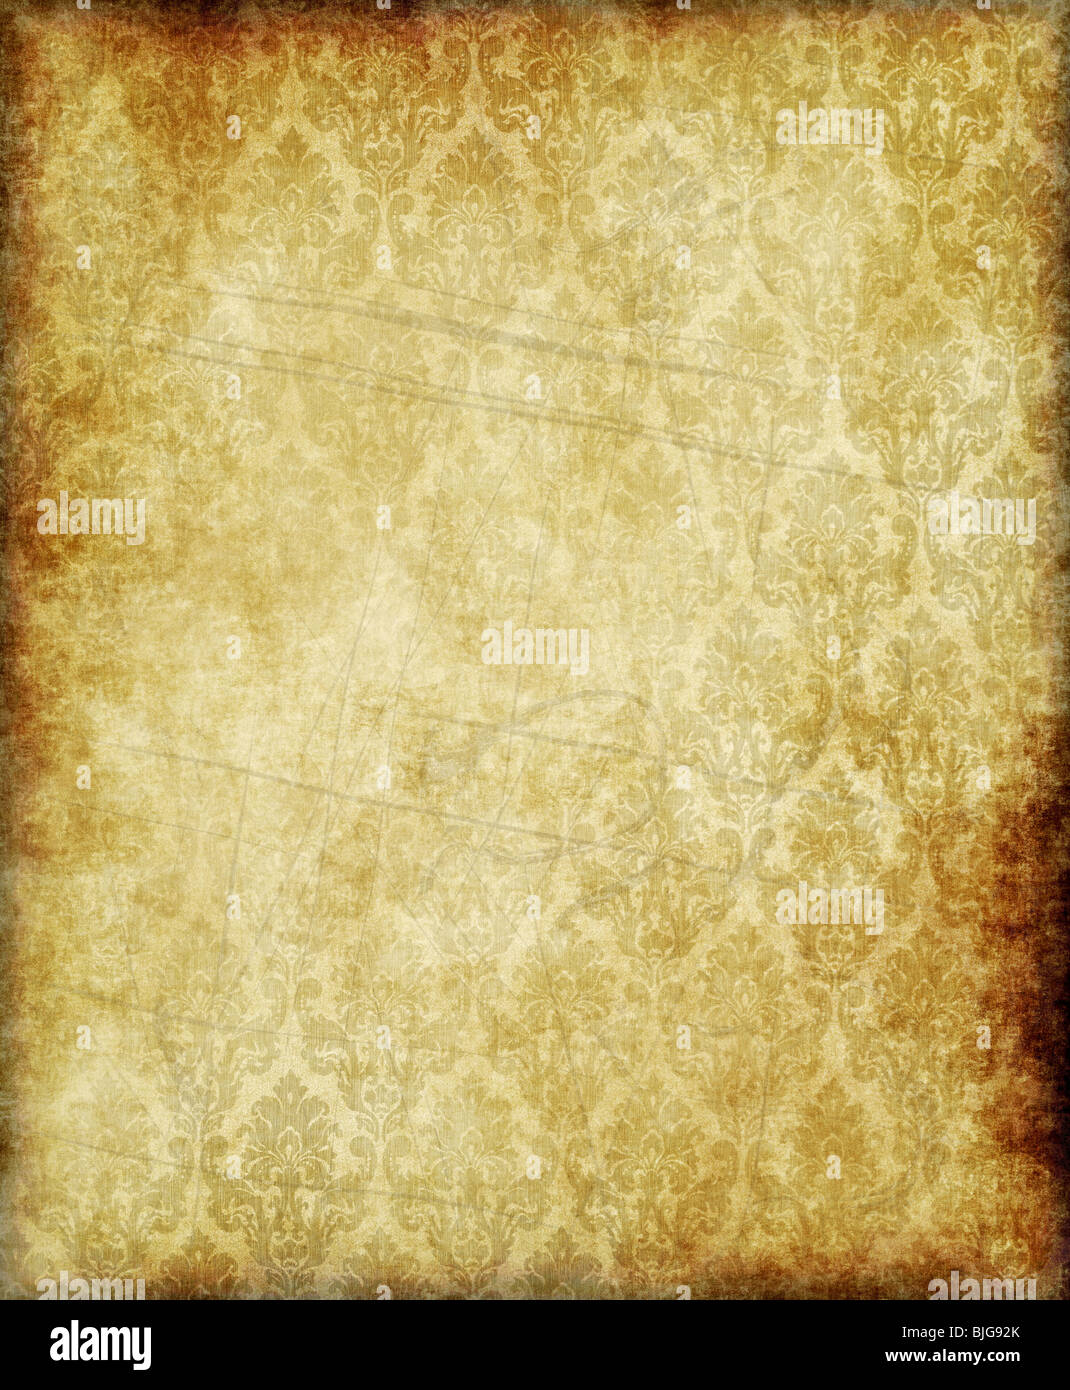 New large old paper or parchment background texture Stock Photo  ES26